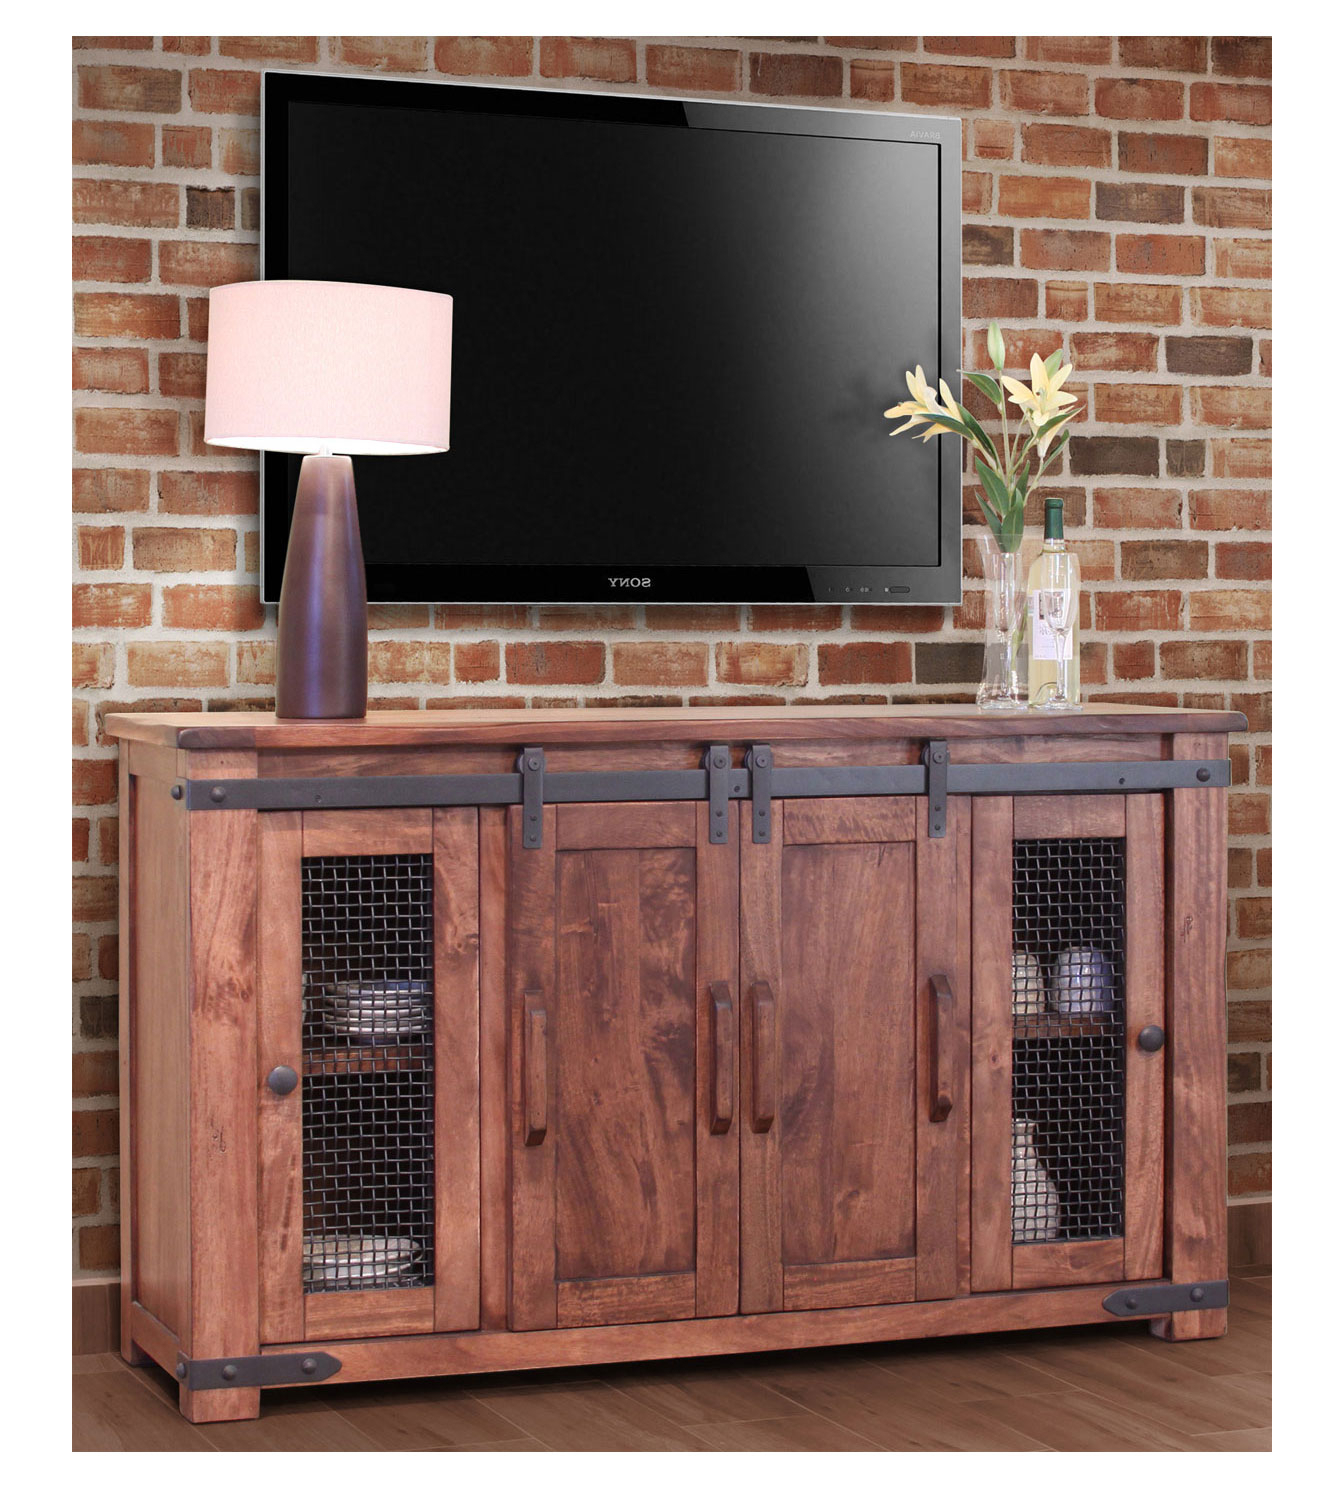 Newest Cabinet Tv Stands Pertaining To Tall Skinny Tv Stand Surprising Flat Screen Slim For Bedroom Corner (Gallery 10 of 20)